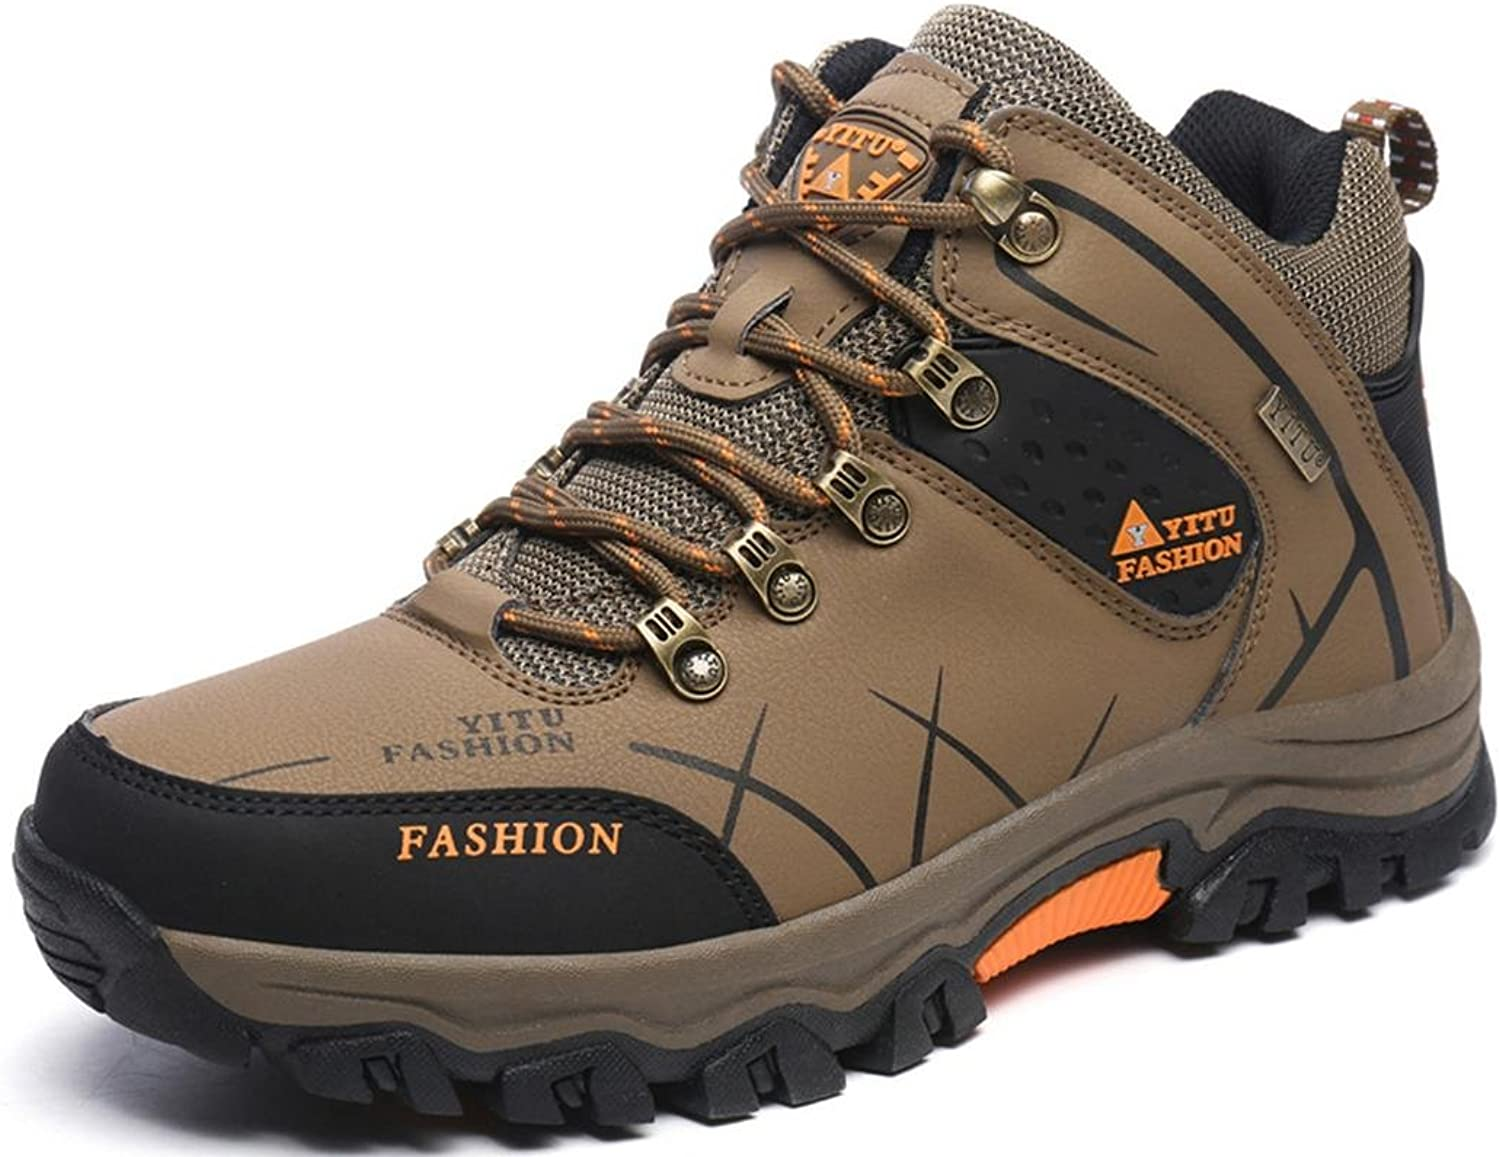 ONENICE Hiking shoes Men Women Leather Breathable Walking Outdoor Trail Climbing Sneaker for Camping Athletic Running Sport Travel shoes